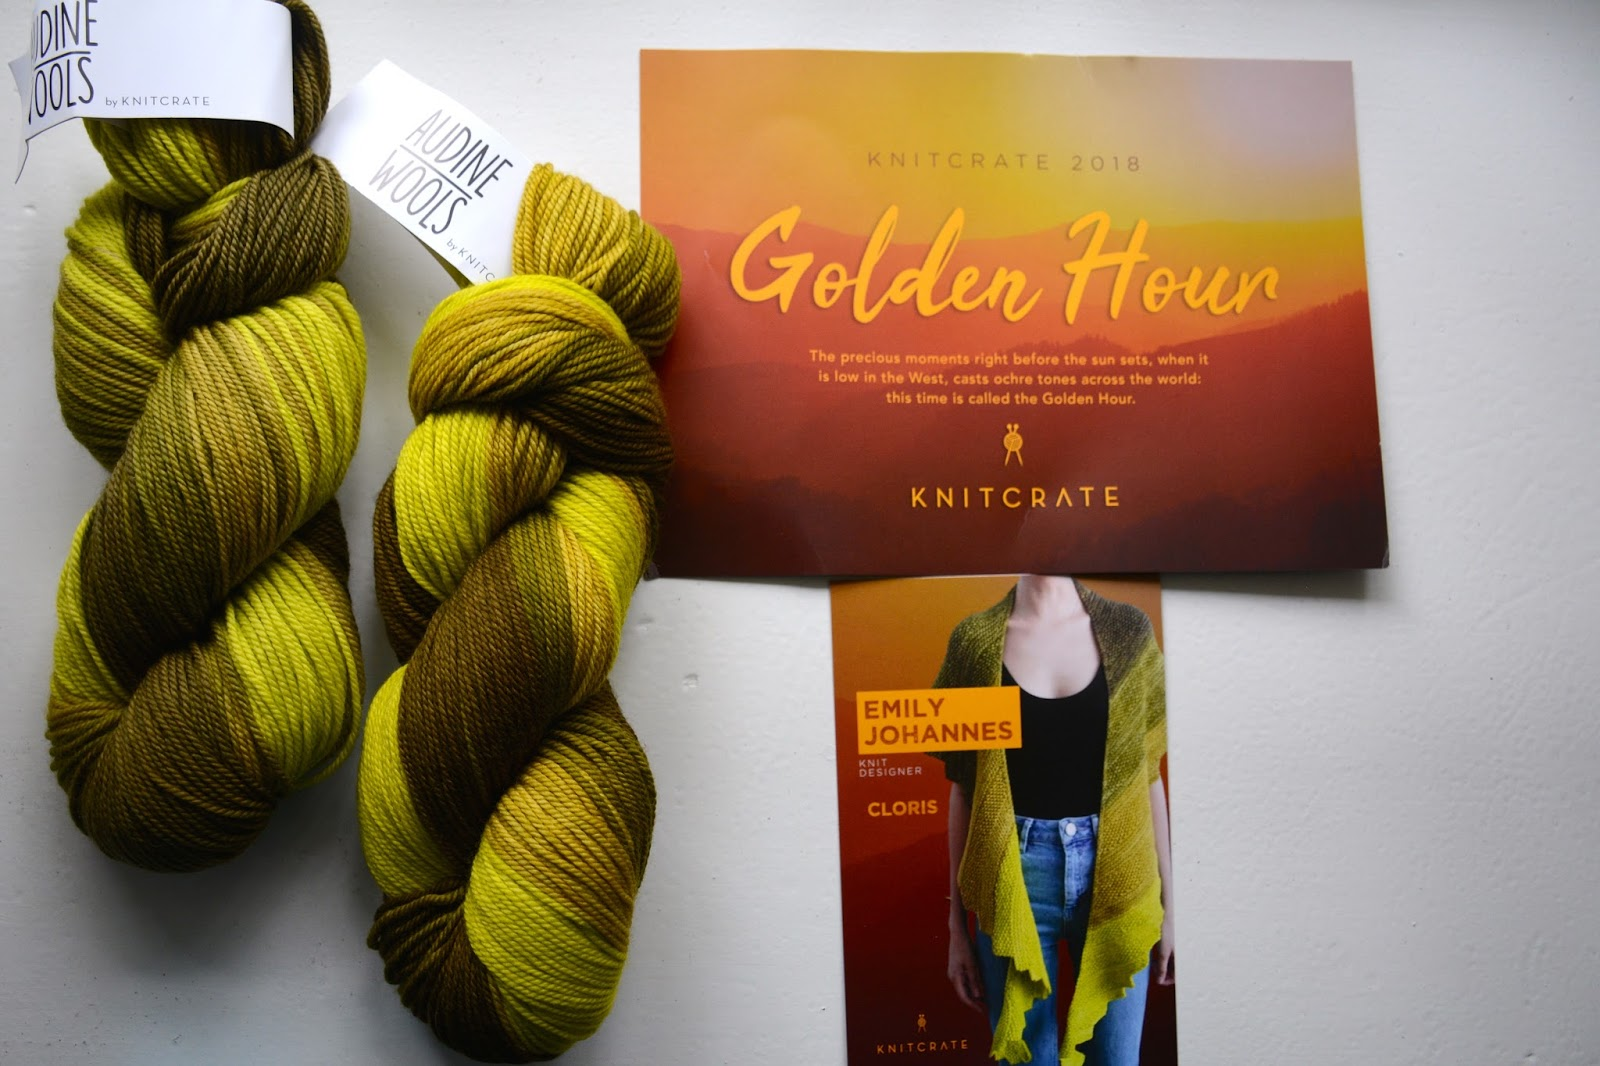 april knitcrate - a Friend to knit with